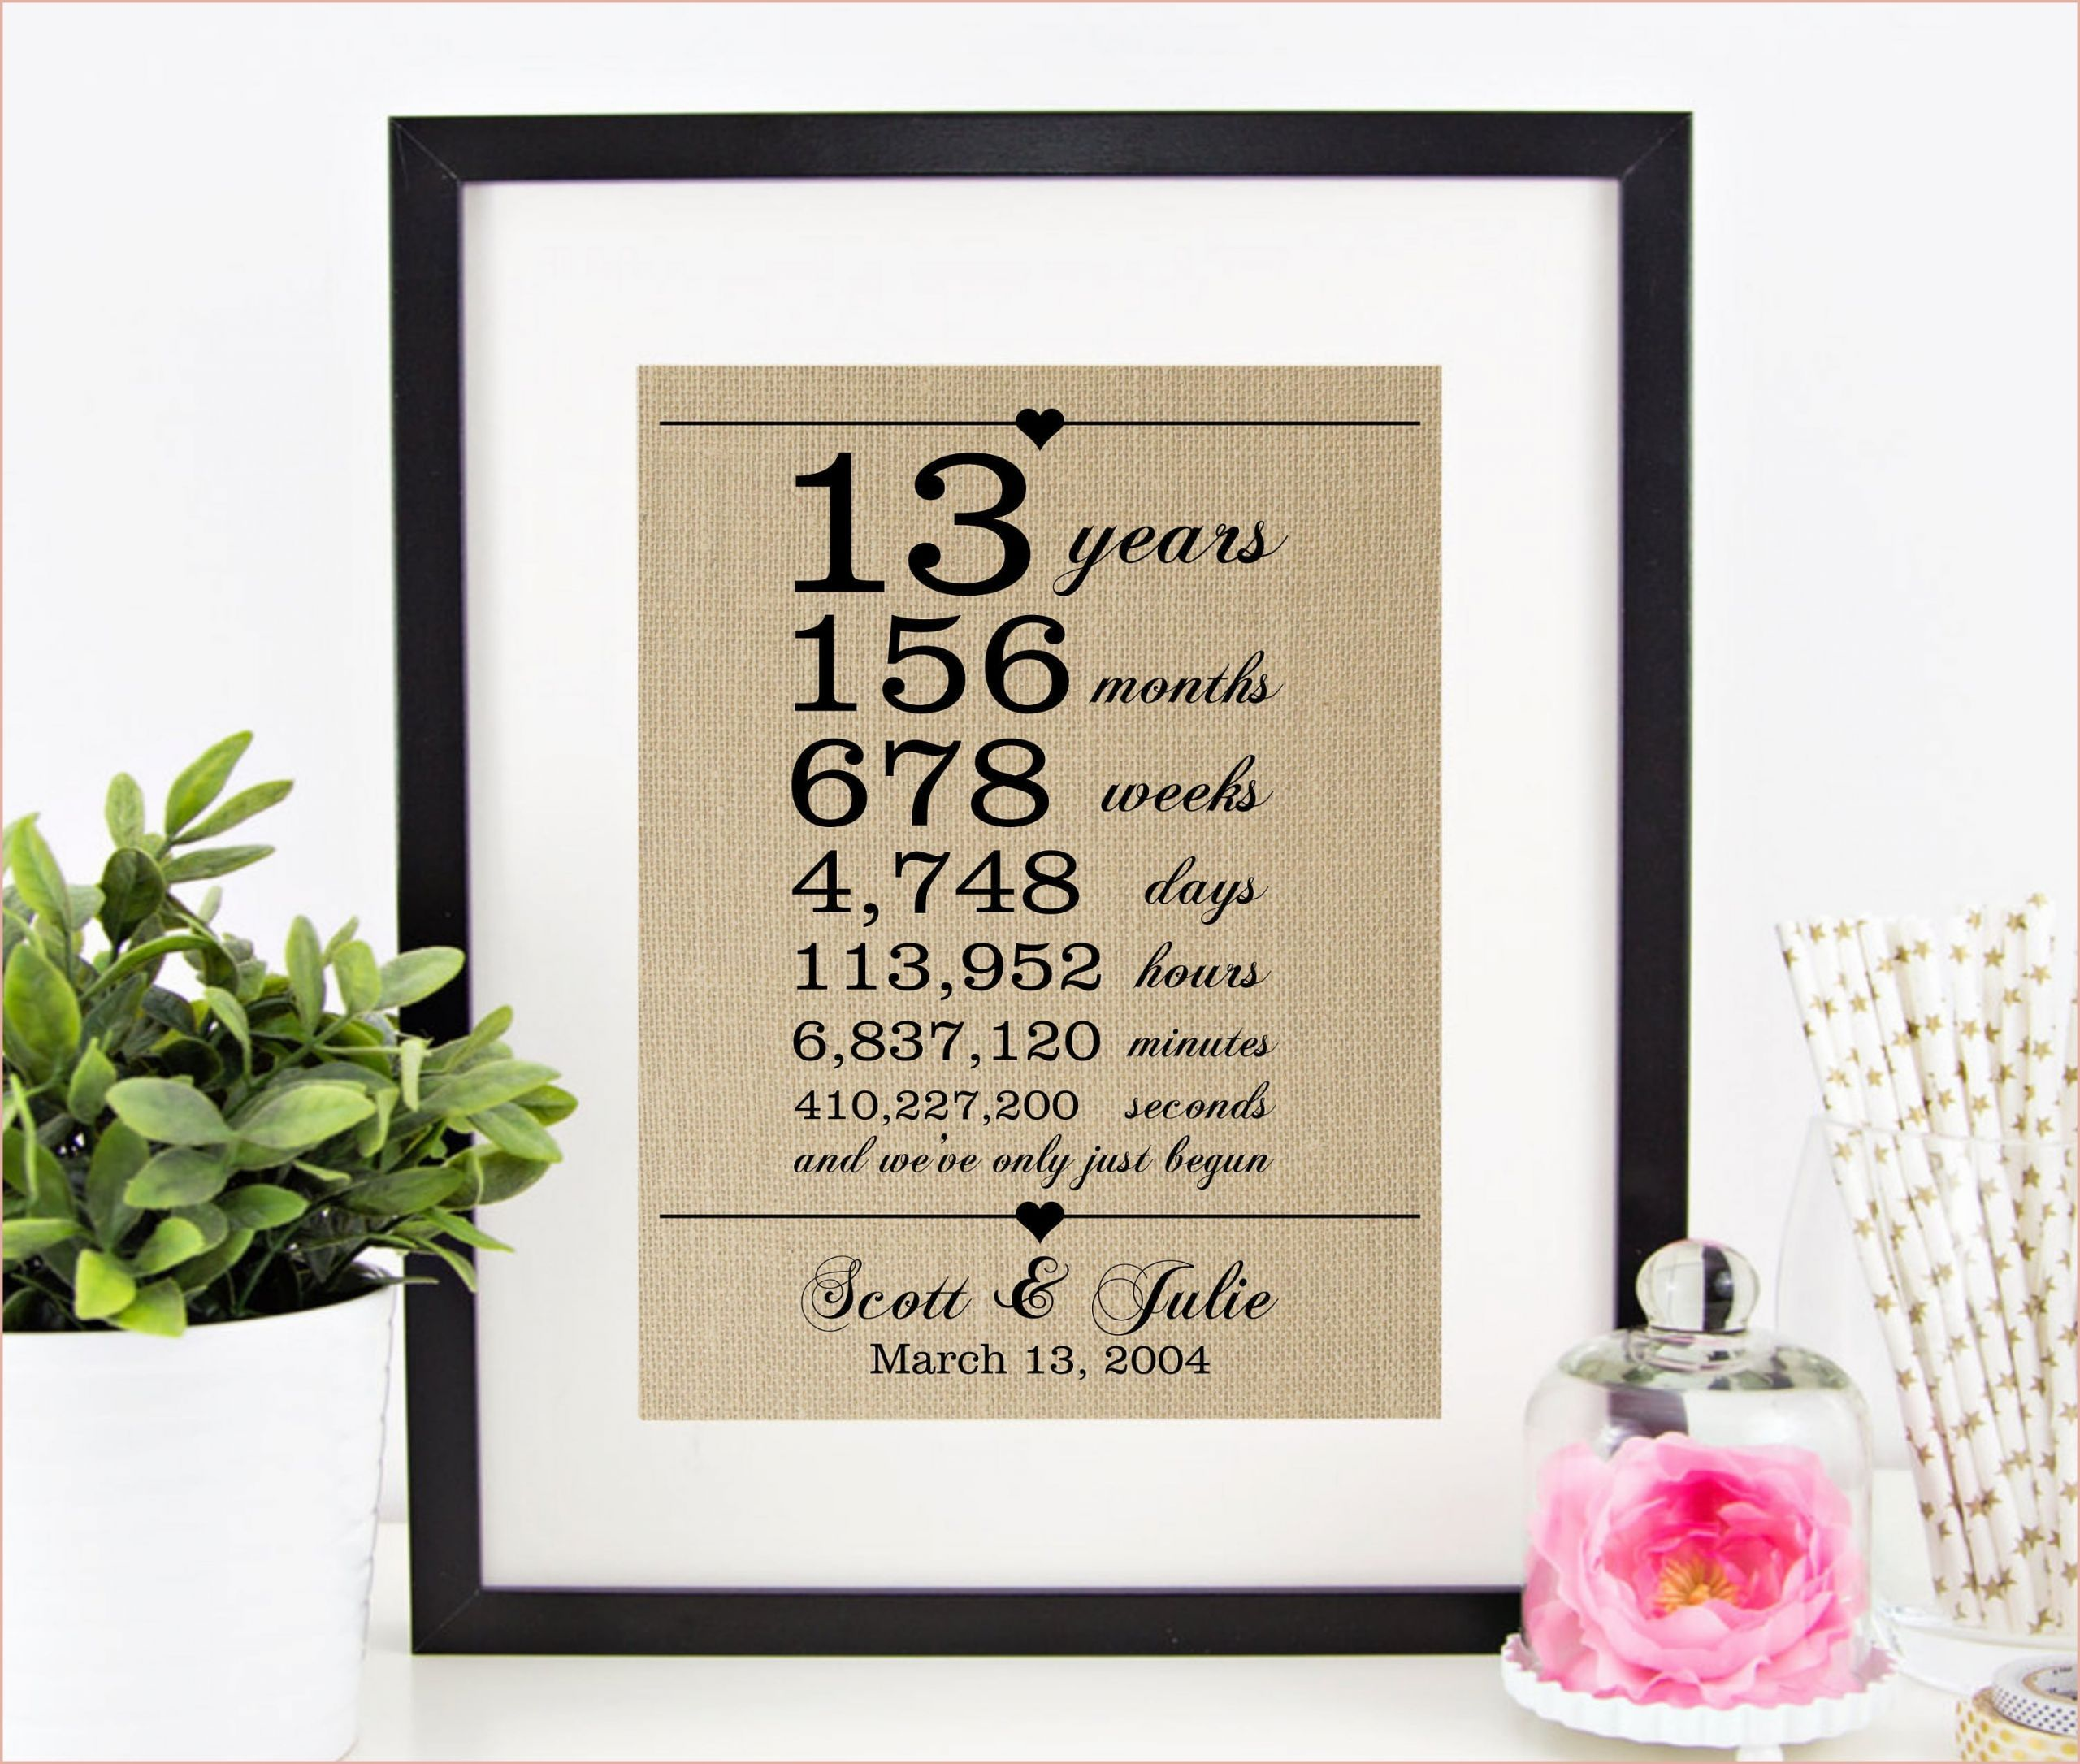 Magnificent 13th Wedding Anniversary Gift For Her That Will Wow You 13th Wedding Anniversary Gift 30th Wedding Anniversary Gift 20th Wedding Anniversary Gifts